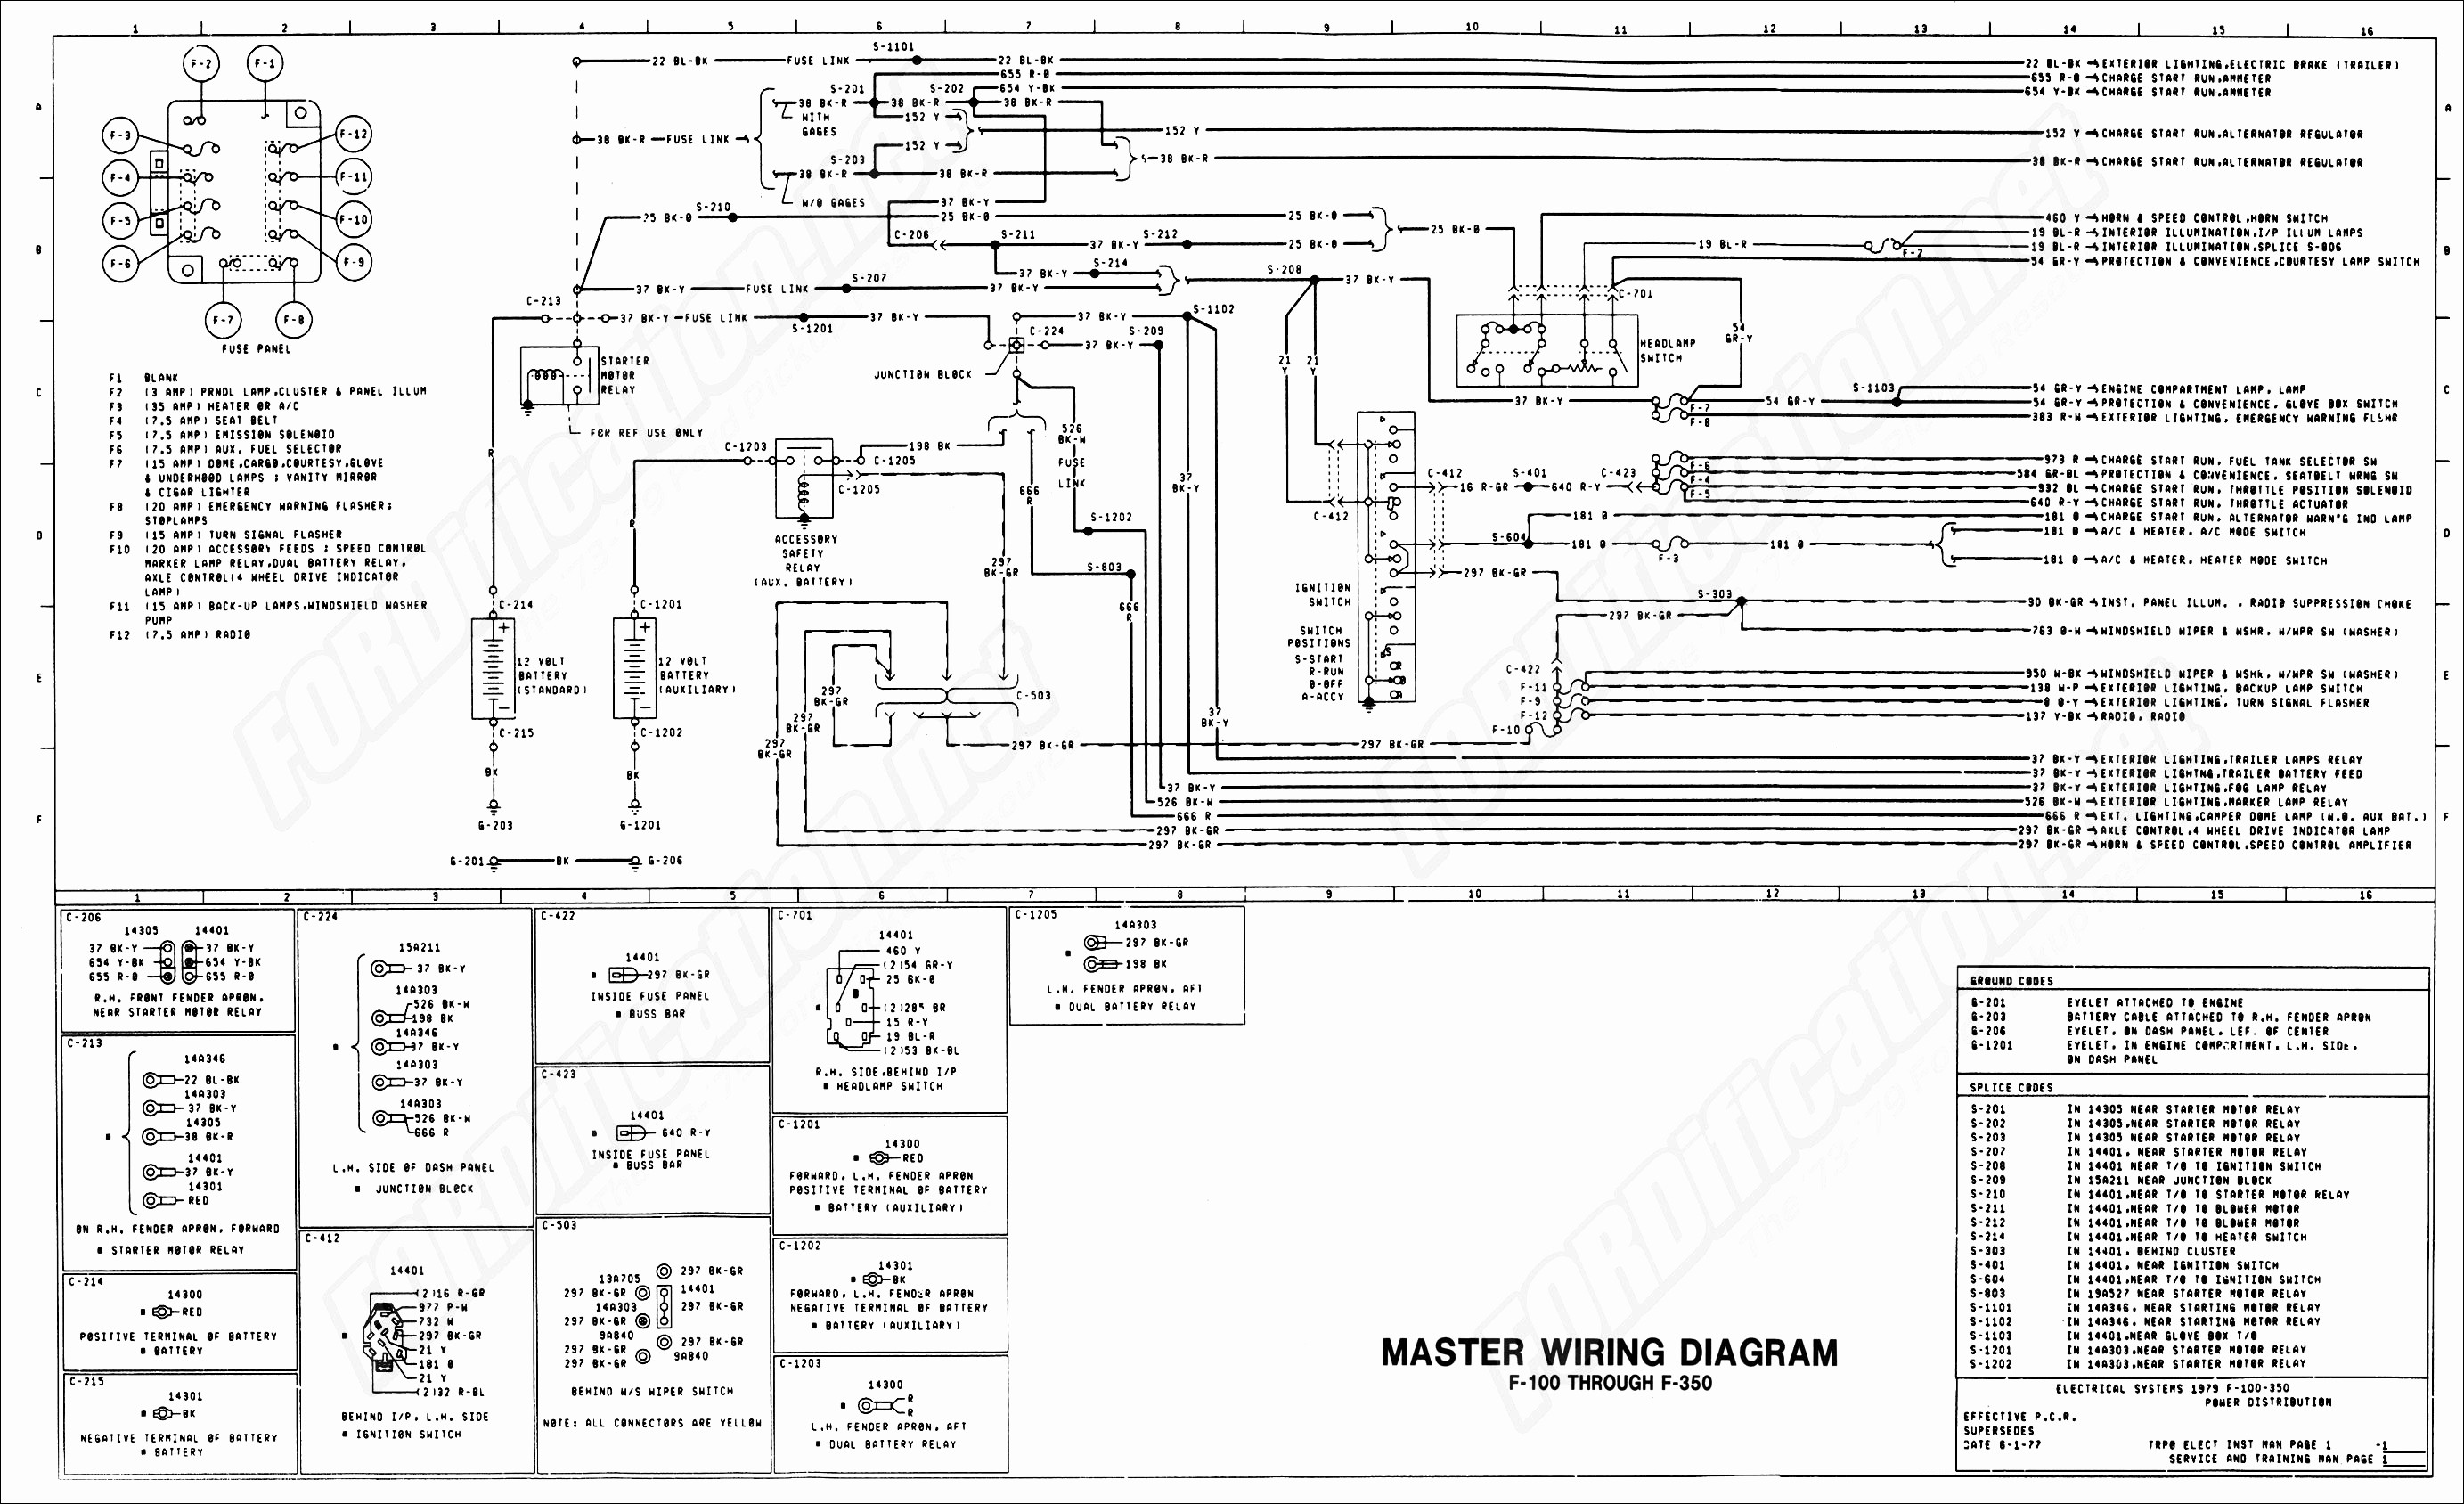 wiring diagram for sony xplod 100db 1996 acura tl stereo 52wx4 image